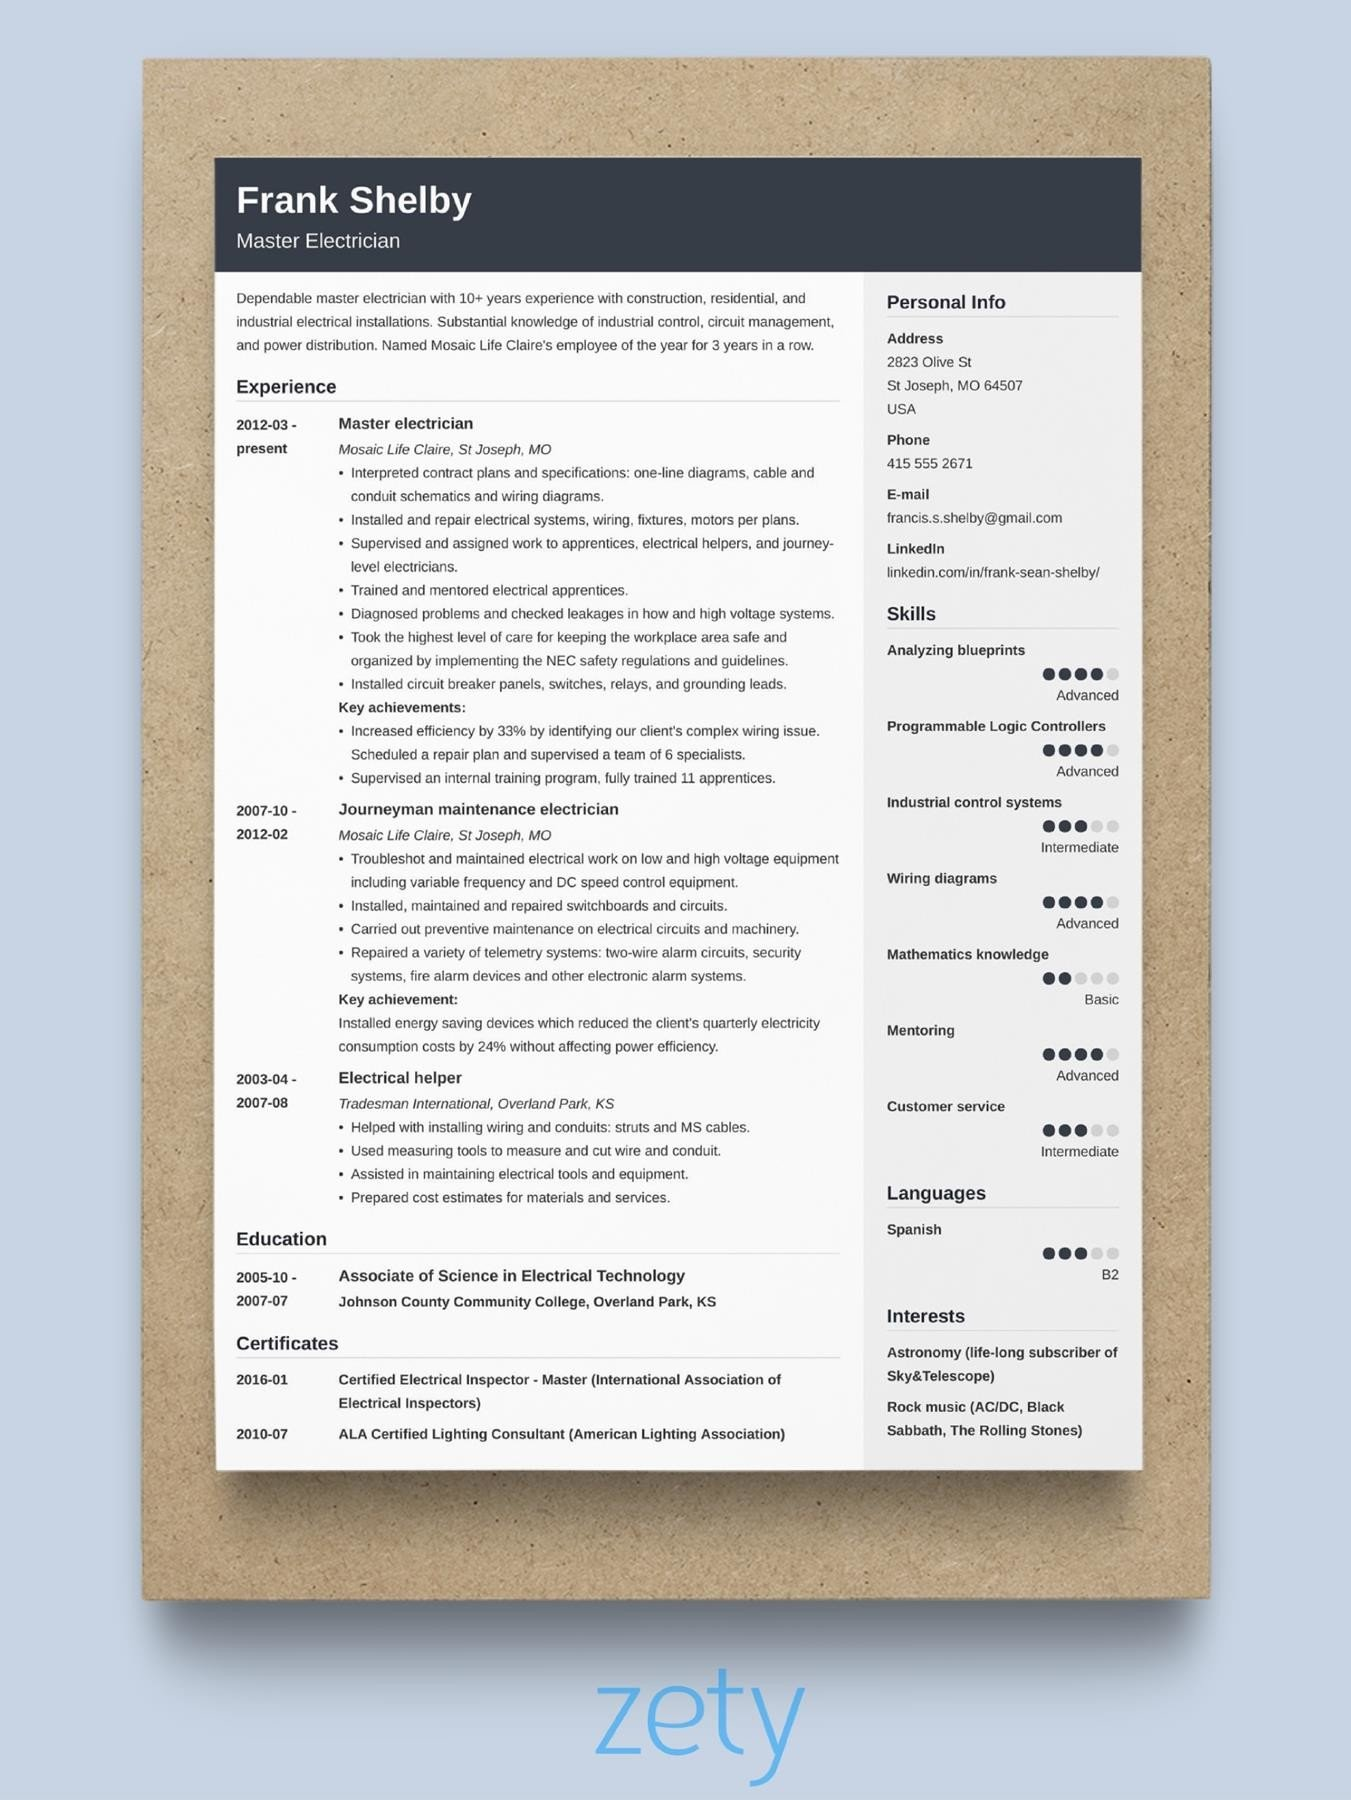 resume structure to organize of writing format sccm samples free workshops nyc dispatch Resume Structure Of Resume Writing